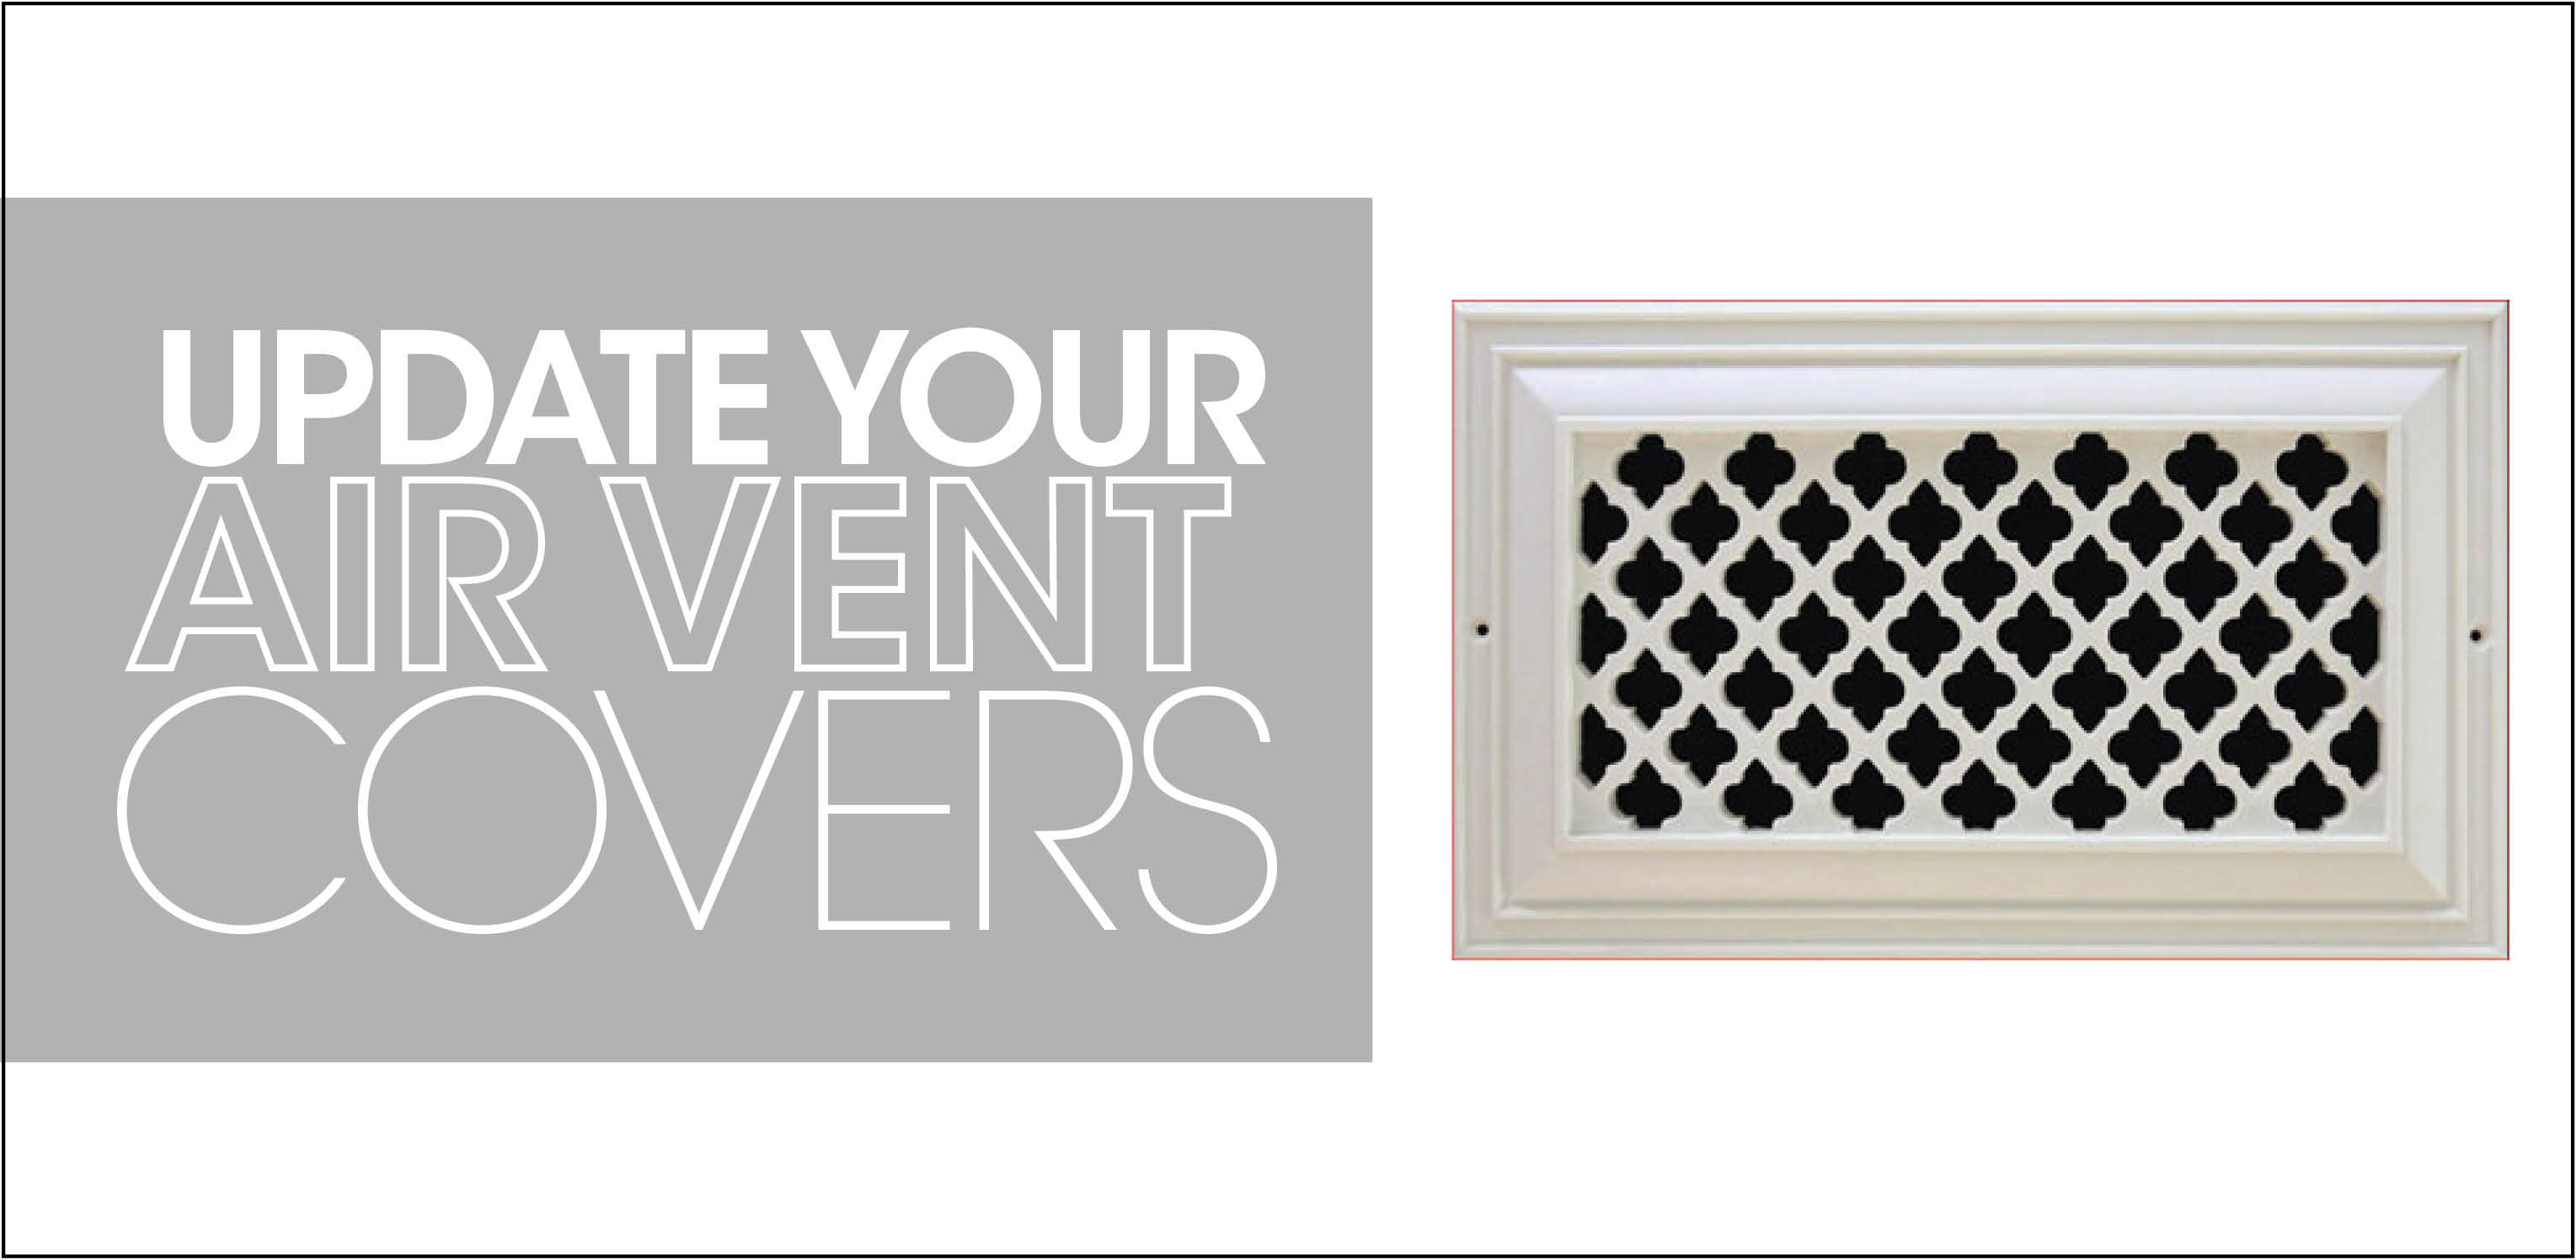 #746857 Ideas For Updating Your Air Vent Covers Aire Serv Best 3573 Heating Duct Covers photos with 3058x1496 px on helpvideos.info - Air Conditioners, Air Coolers and more